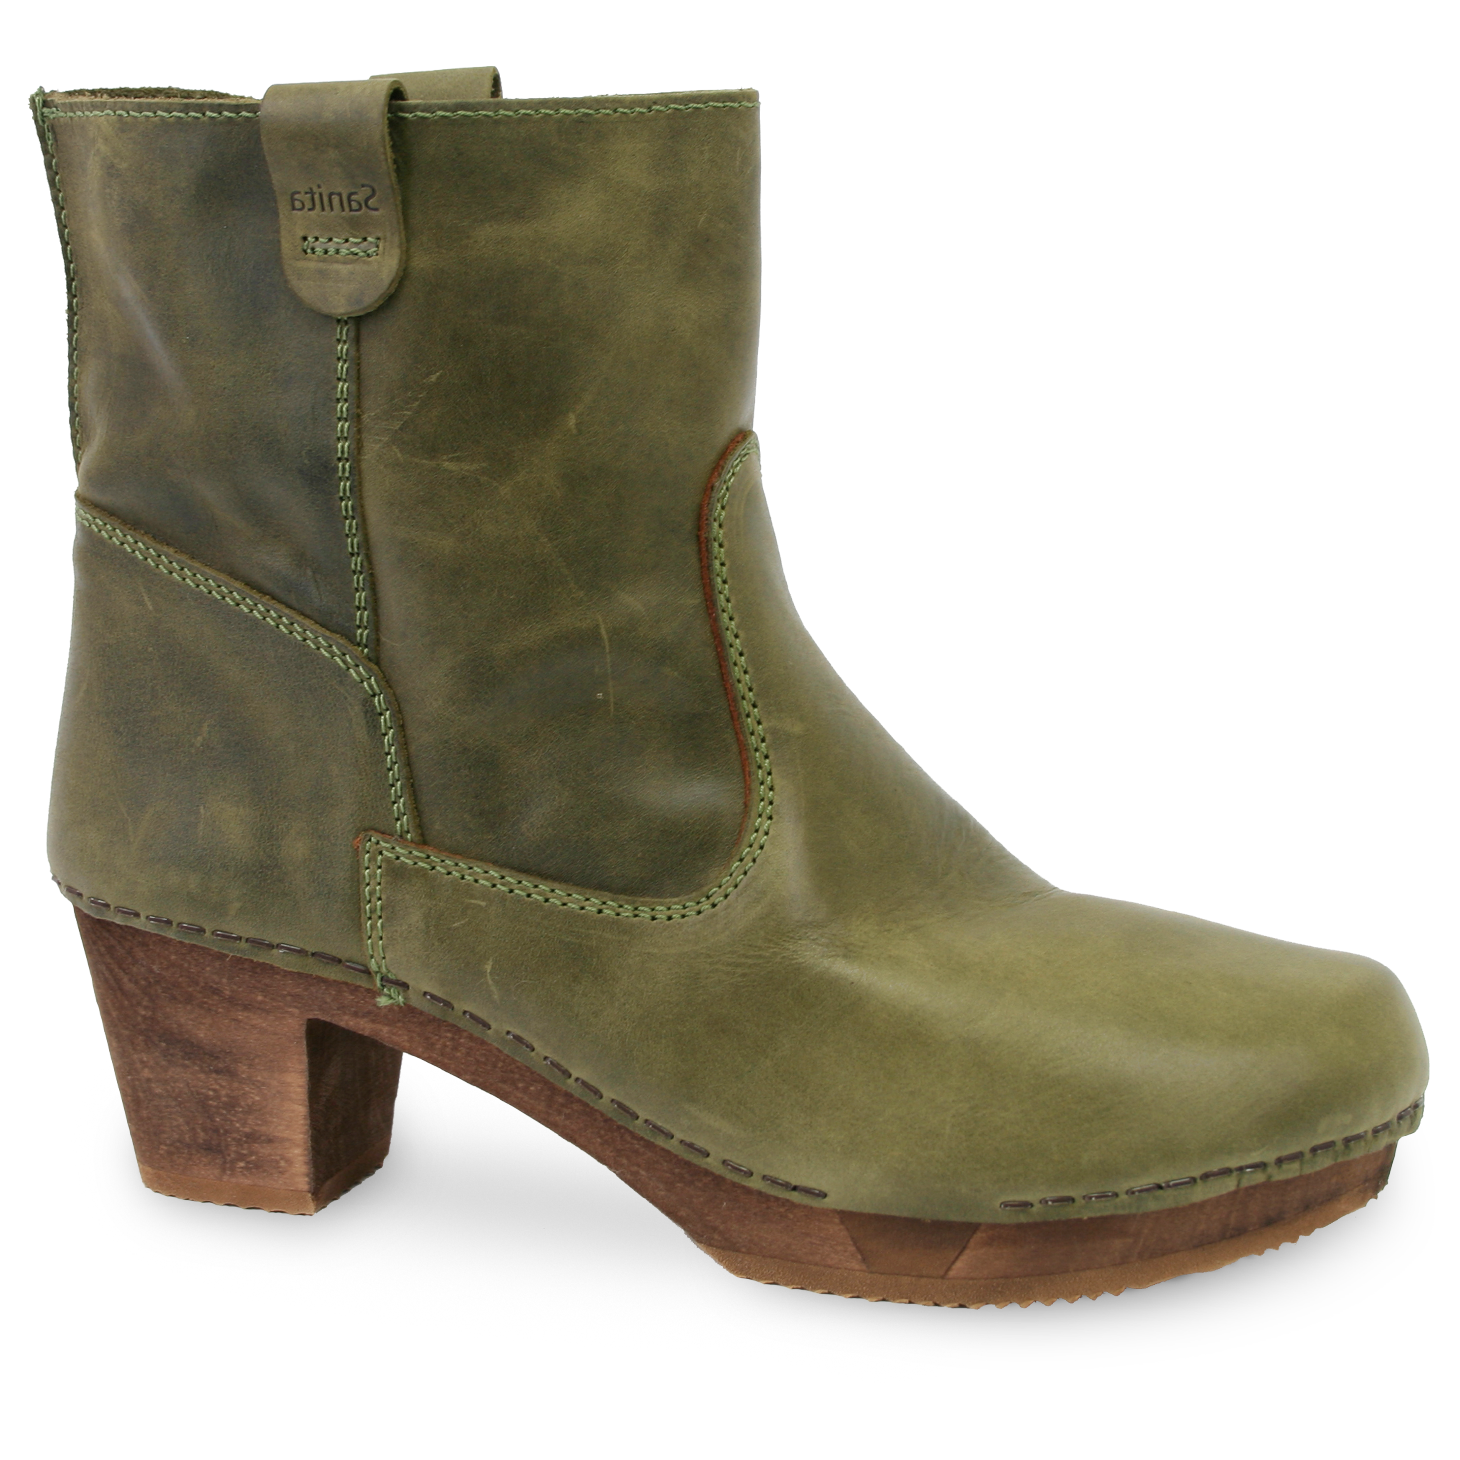 Sanita Juna Women's in Moss Boot